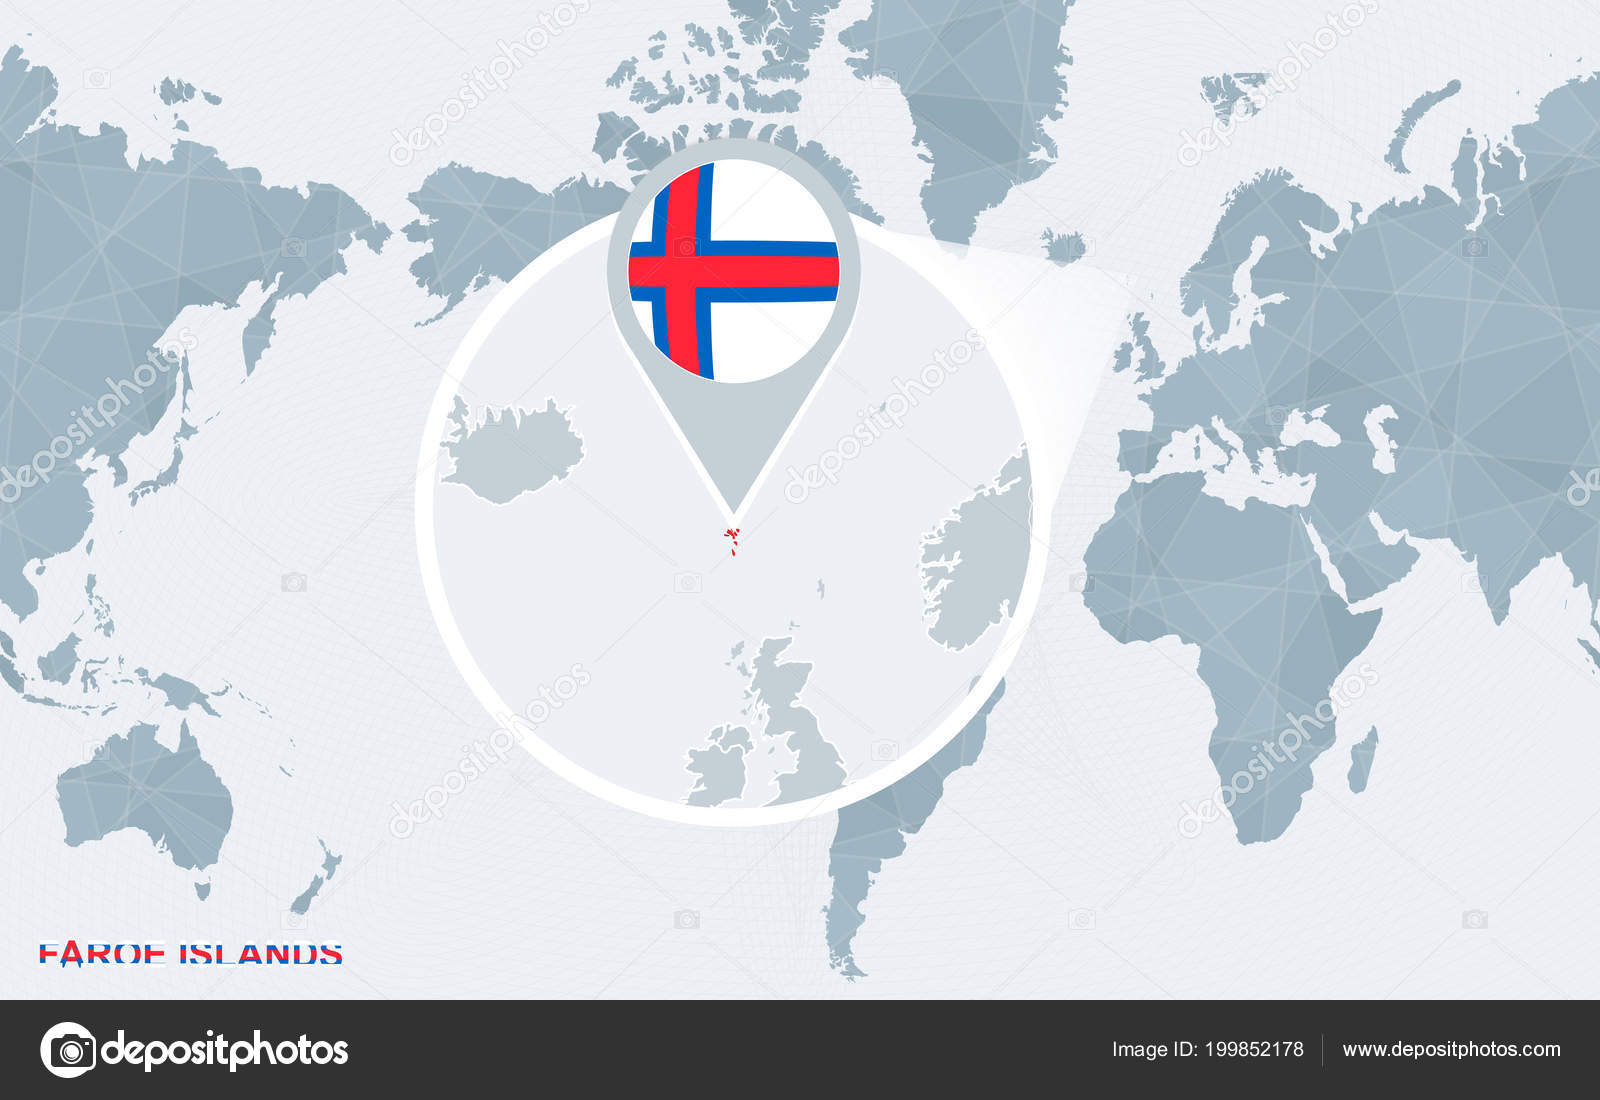 World Map Centered On America With Magnified Faroe Islands